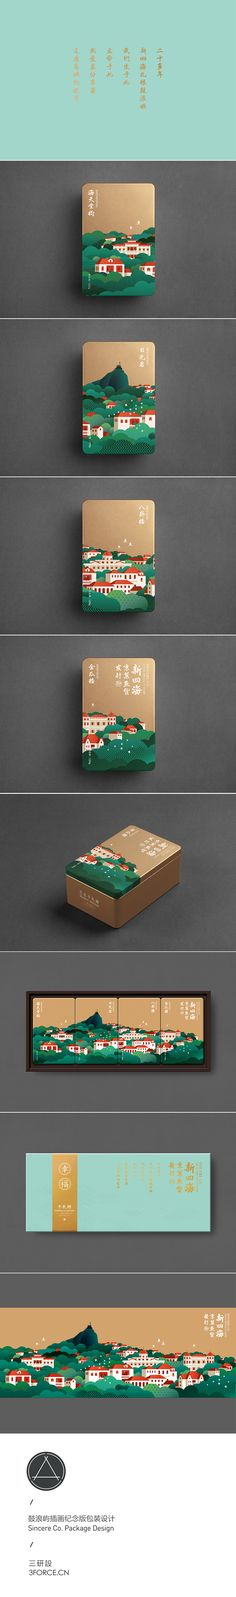 Sincere Co. Nougat Packaging / 新四海牛軋糖包裝設計 on Behance Stop by my Etsy Shop… Logo Inspiration, Packaging Inspiration, Illustration Inspiration, Web Design, Food Design, Layout Design, Poster Design, Print Design, Identity Design